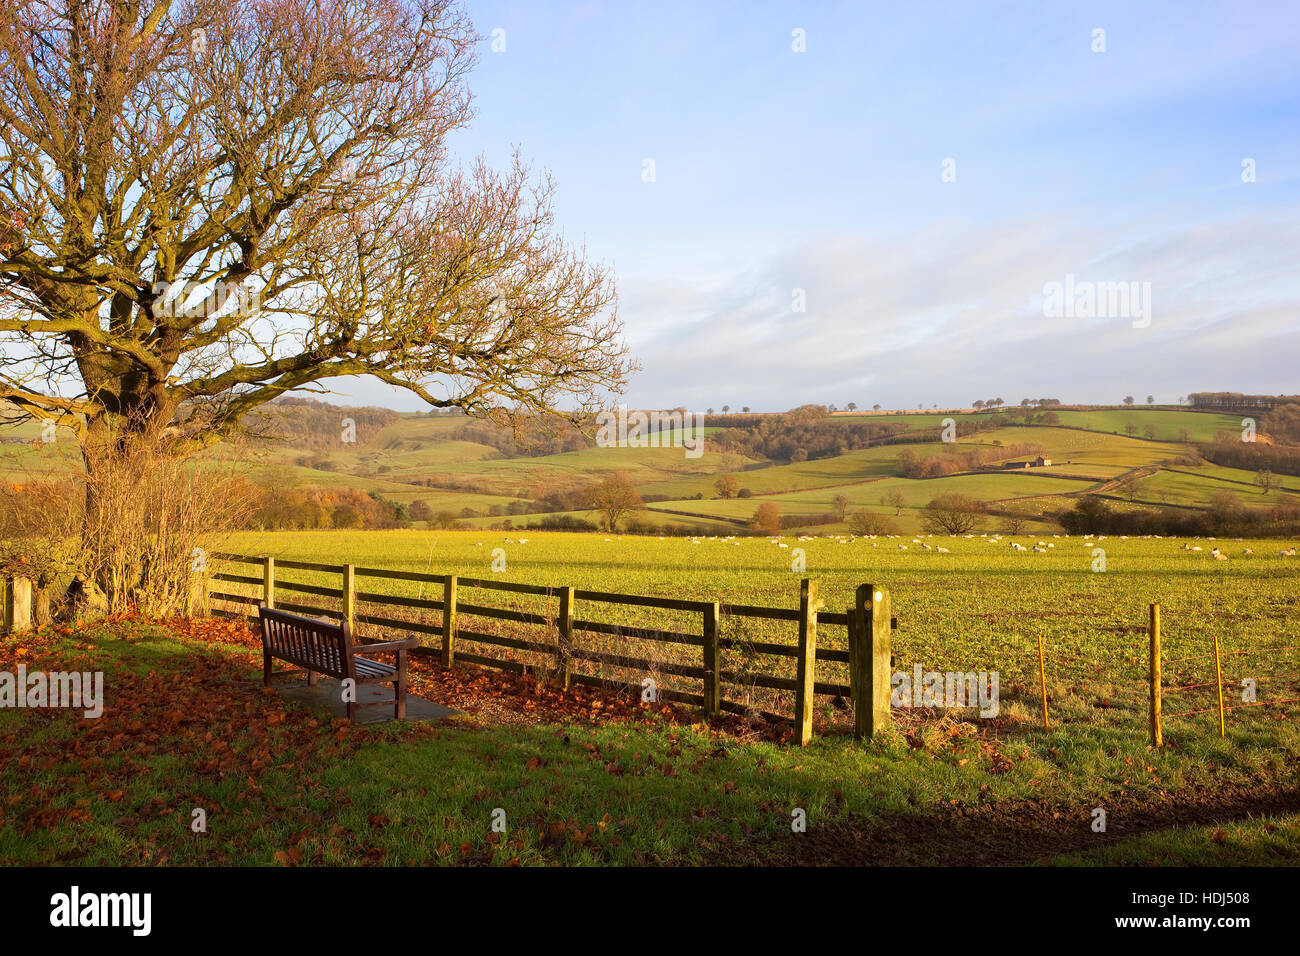 A wooden bench seat and fence by an Oak tree in the scenic  Yorkshire wolds landscape under a blue cloudy sky in - Stock Image